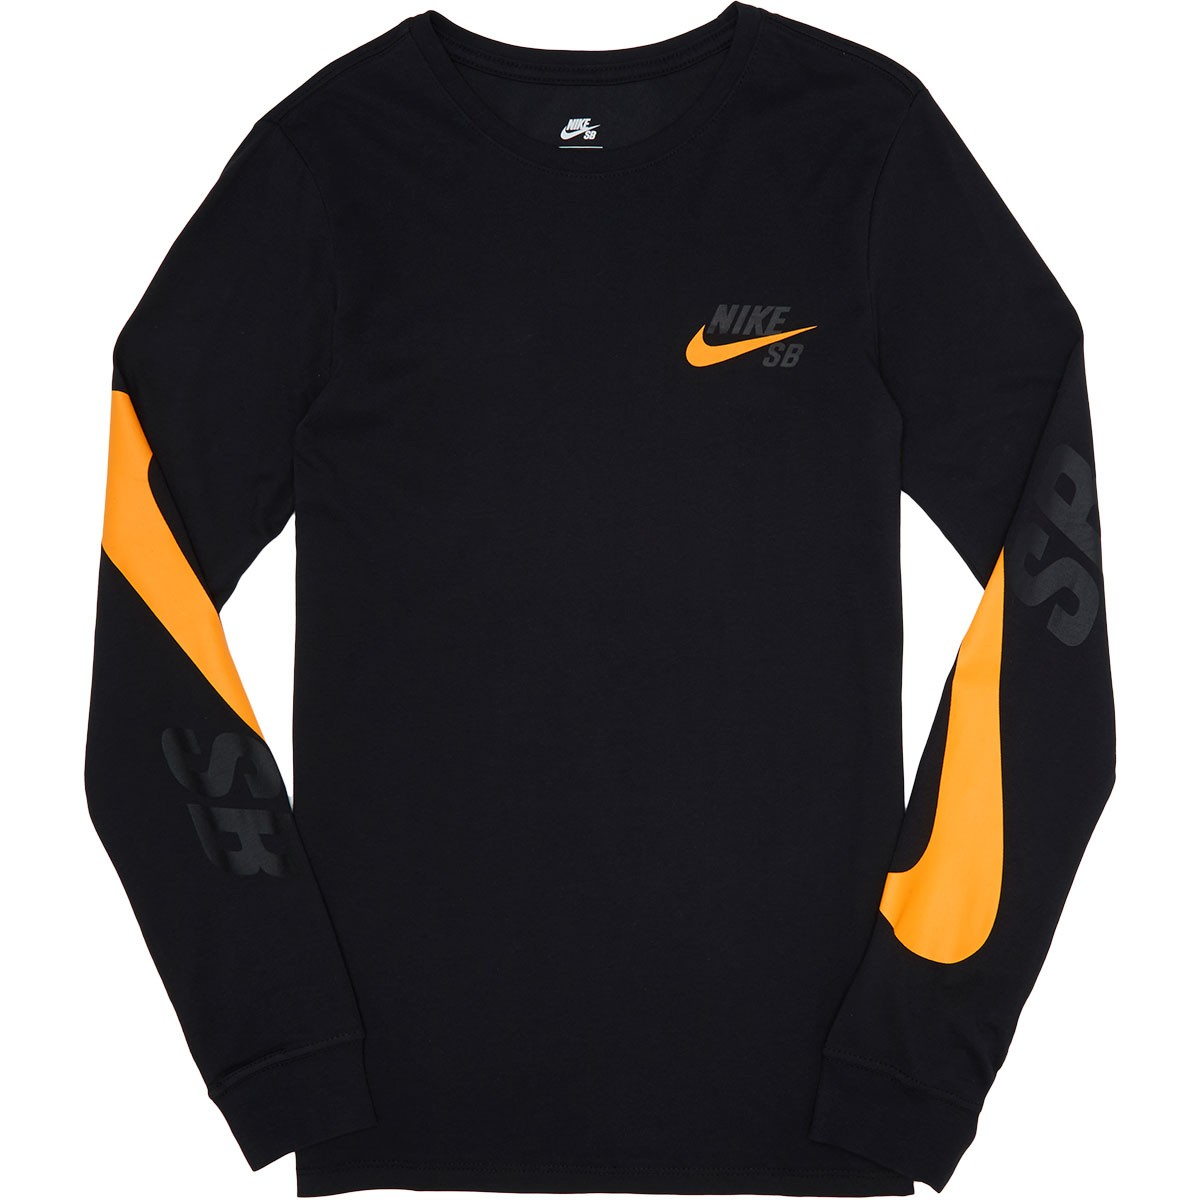 Nike SB Tonal Long Sleeve T-Shirt - Black Black Circuit Orange 9e681c3e871b